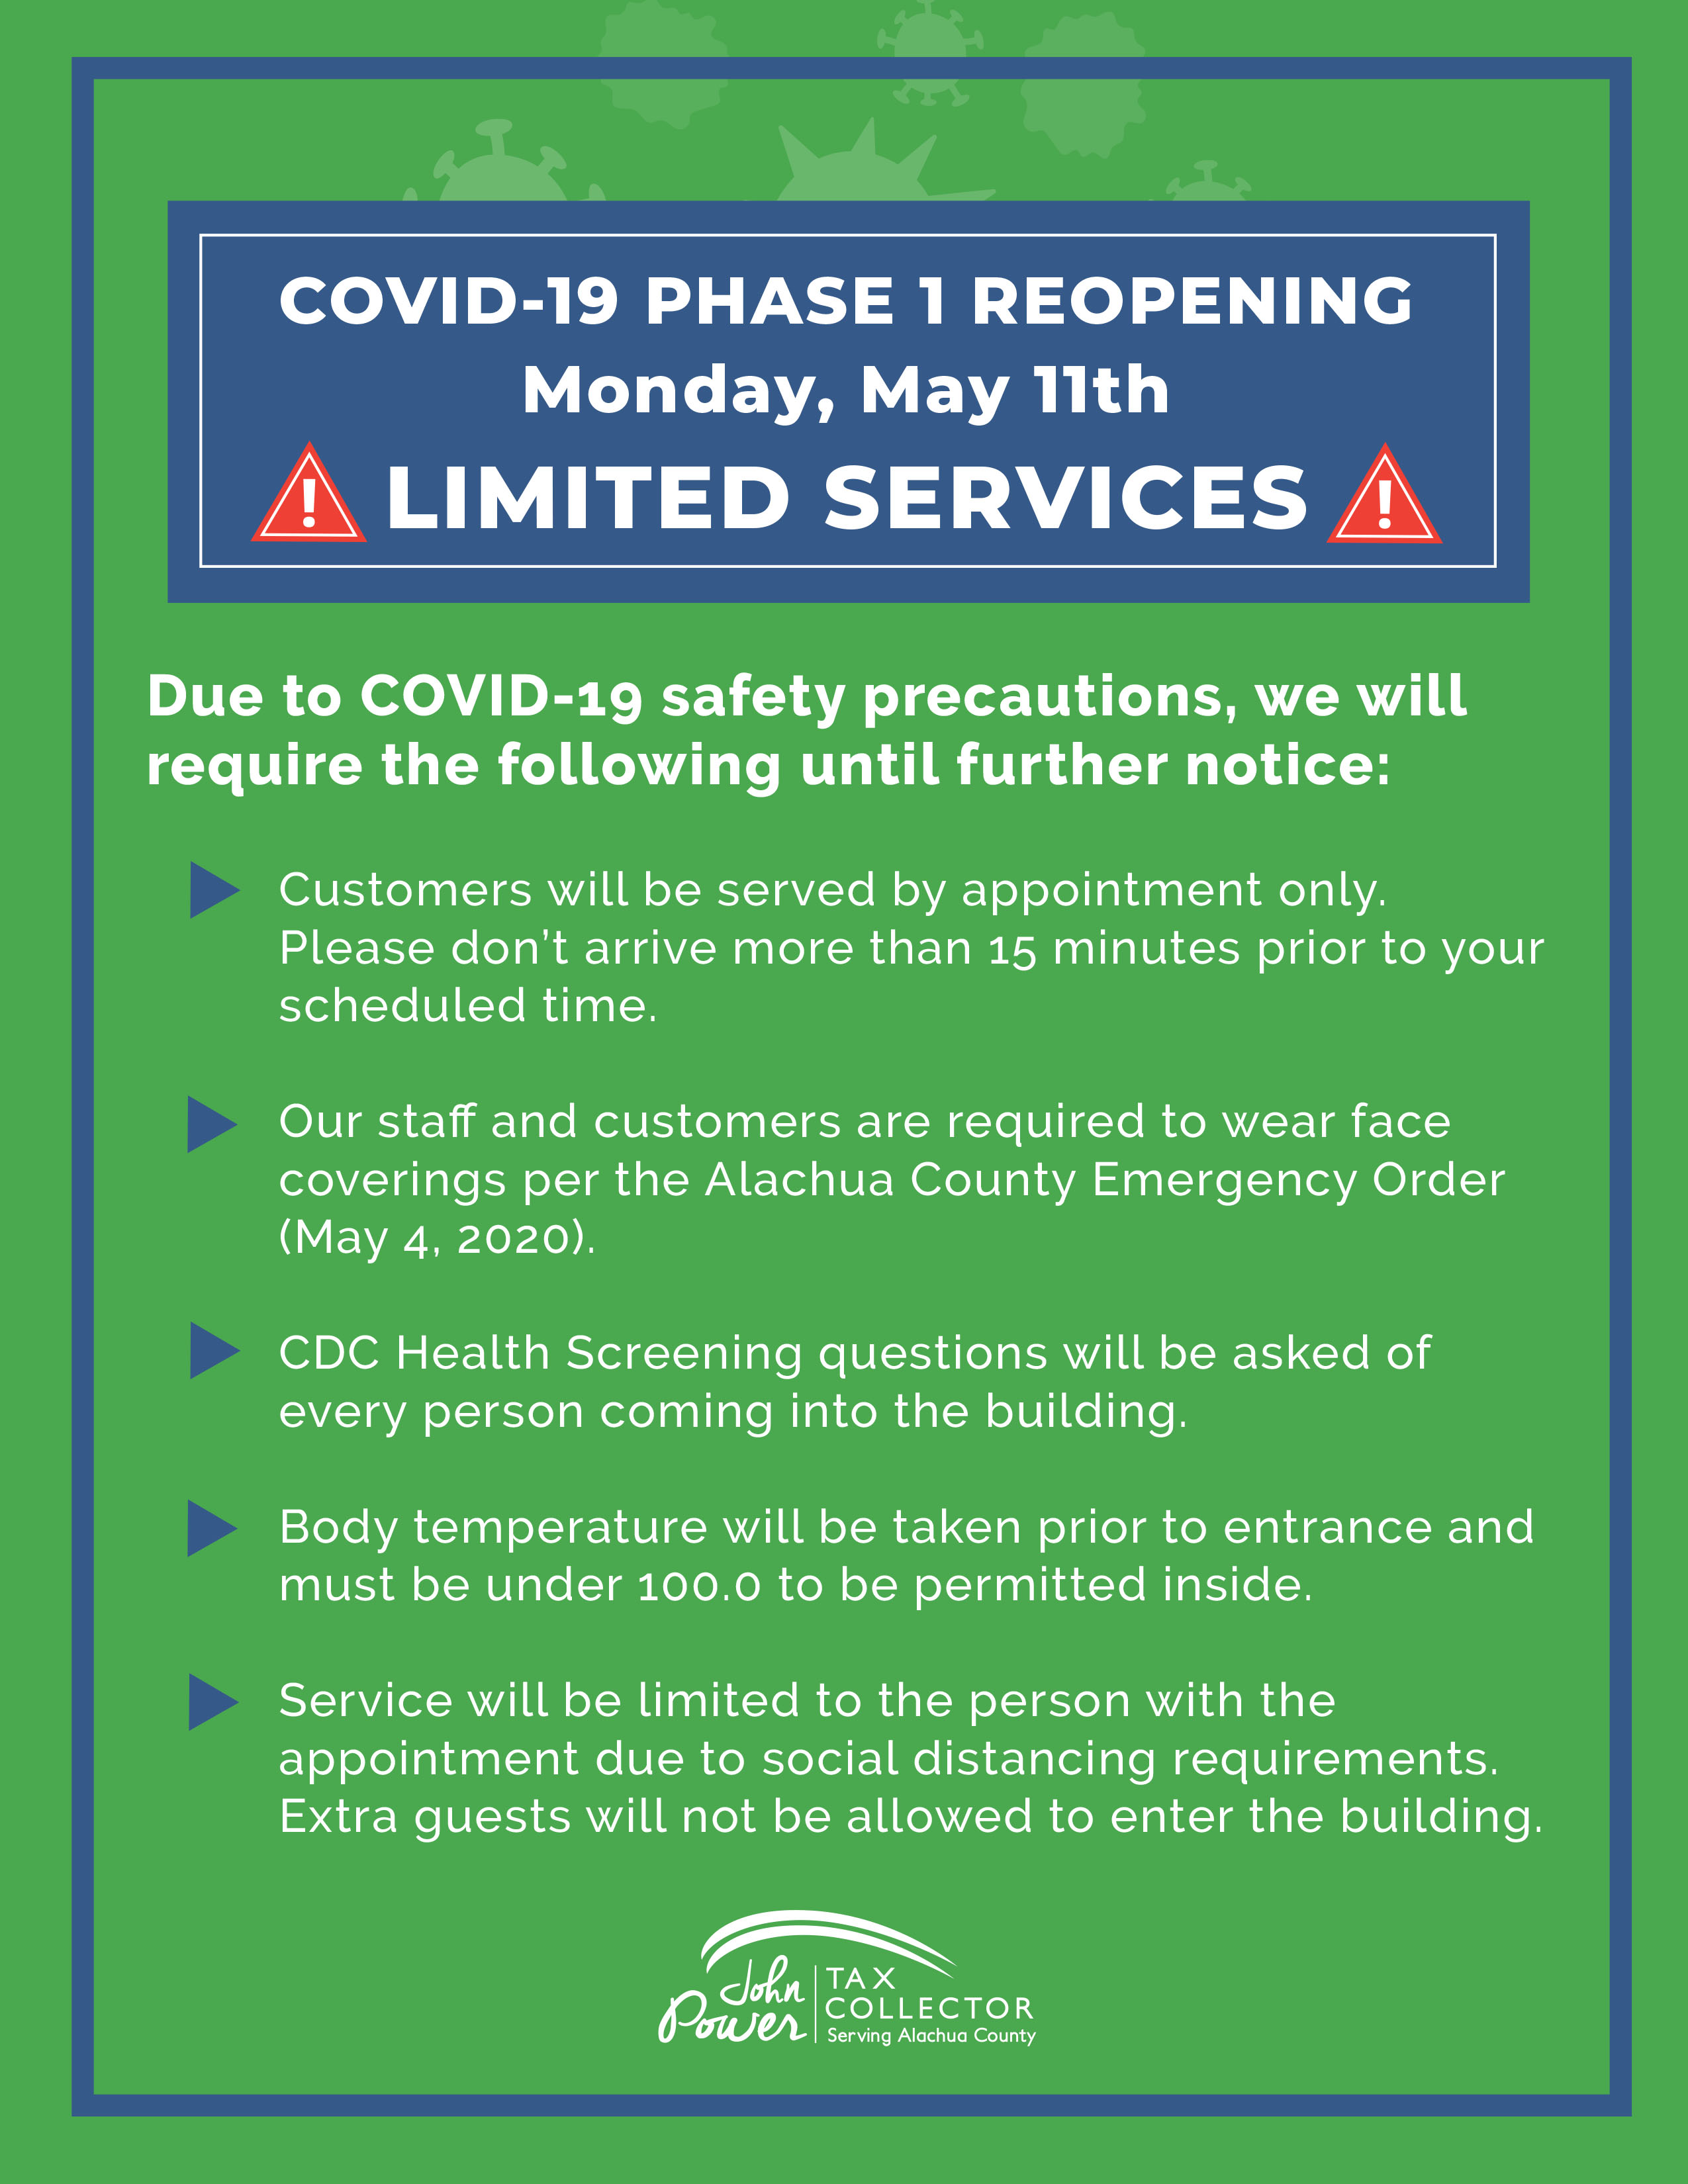 COVID-19 Pahse 1 reopenng May 11th. limited Services. Due to COVID-19 safety precautions, we will require the following until further notice: Customers will be served by appointment only. Please don't arrive more than 15 minutes prior to your scheduled time. Our staff and customers are required to wear face coverings per the Alachua County Emergency Order (May 4, 2020). CDC Health Screening questions will be asked of every person coming into the building. Body temperature will be taken prior to entrance and must be under 100.0 to be permitted inside. Service will be limited to the person with the appointment due to social distancing requirements. Extra guests will not be allowed to enter the building.